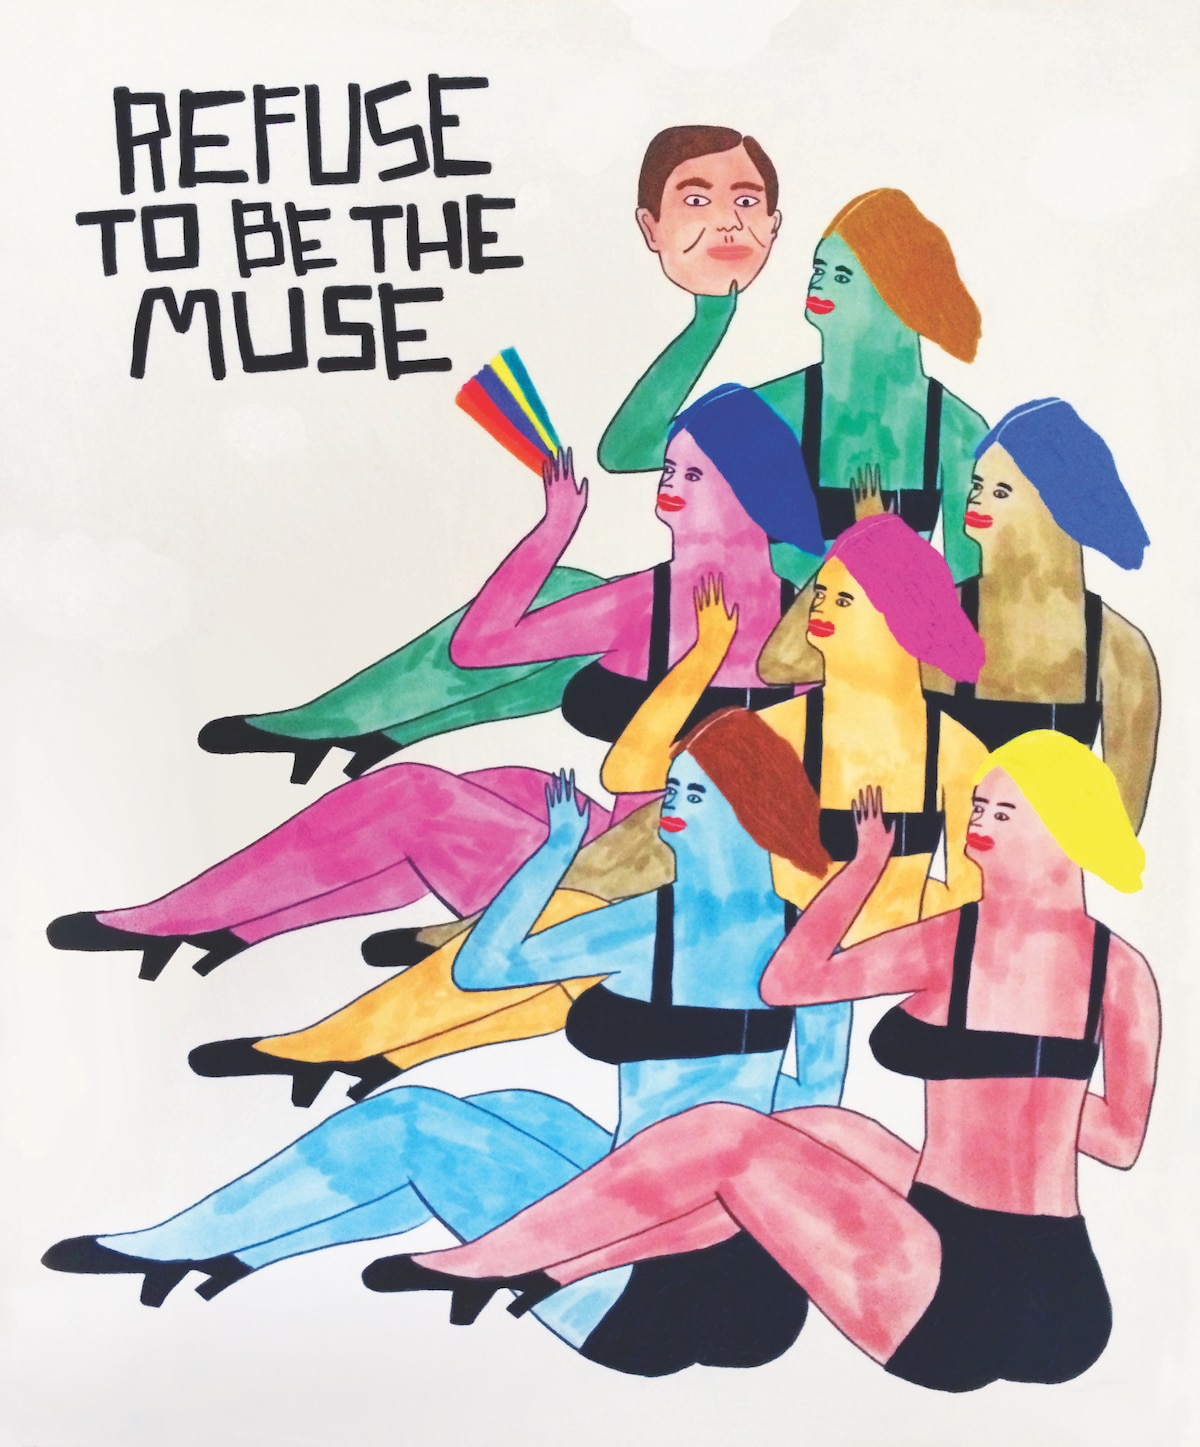 Saatchi - Refuse to Be the Muse All-Female Catalog